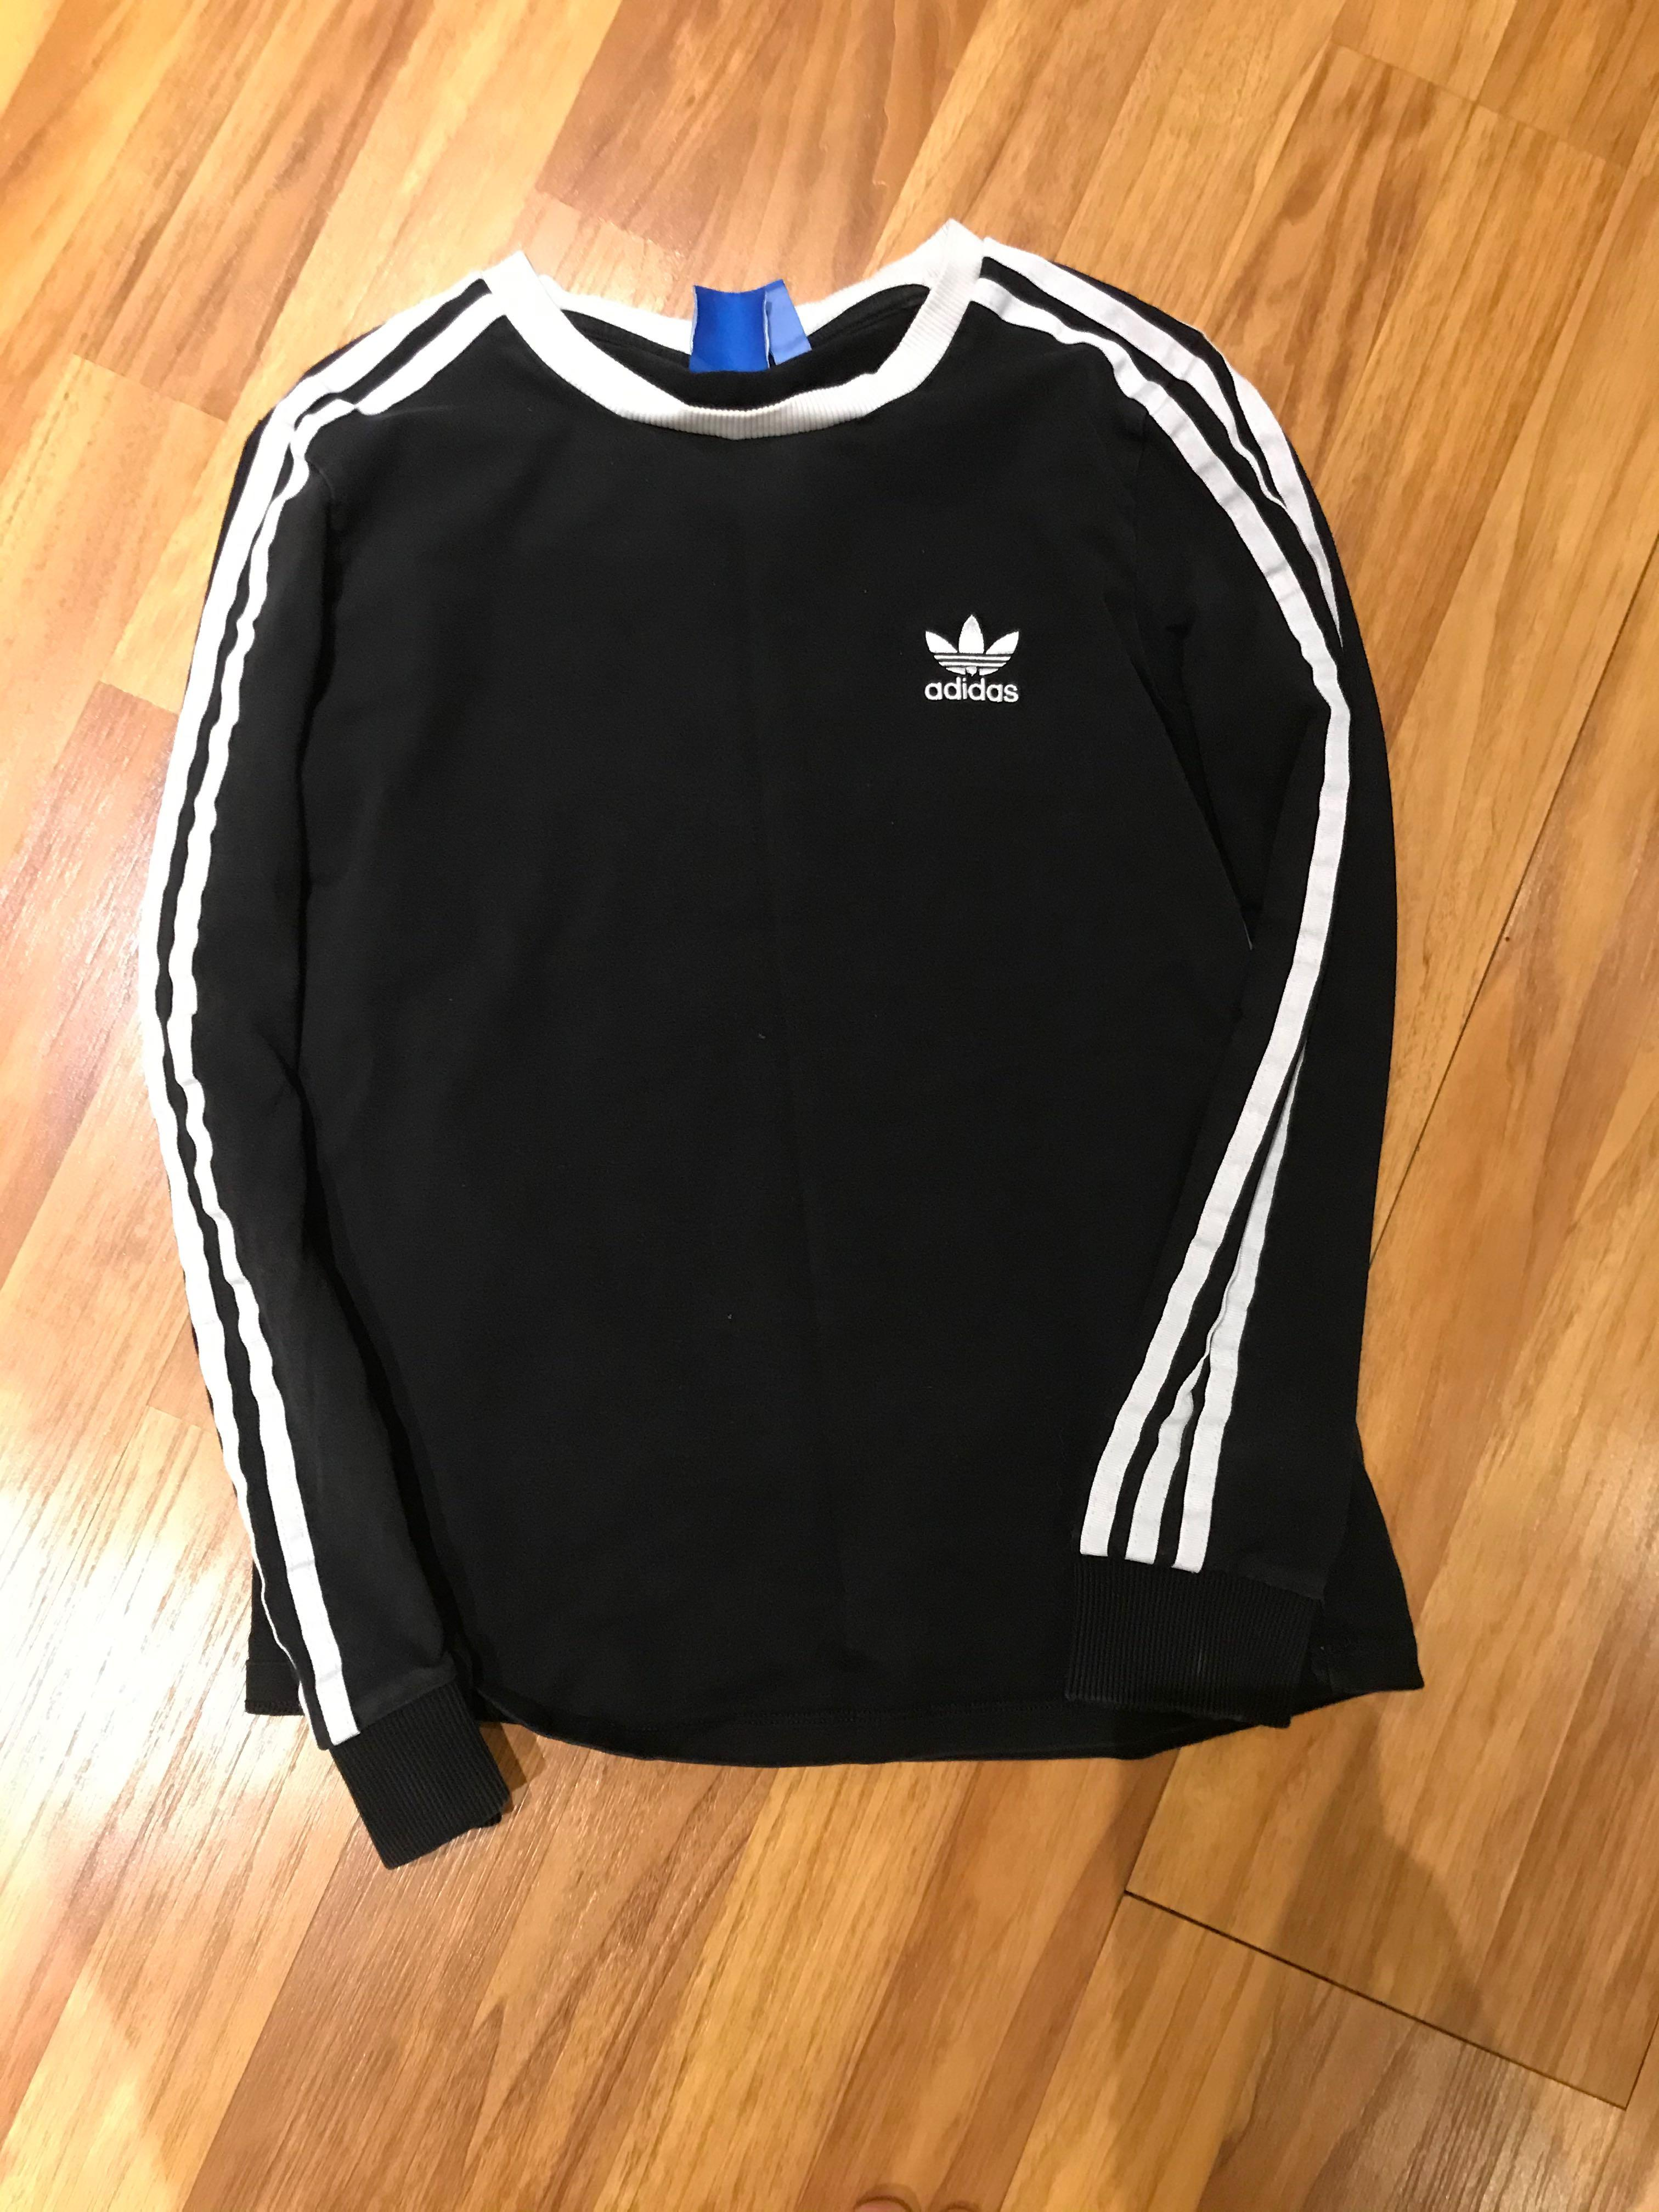 Adidas long sleeve athletic top. Size small